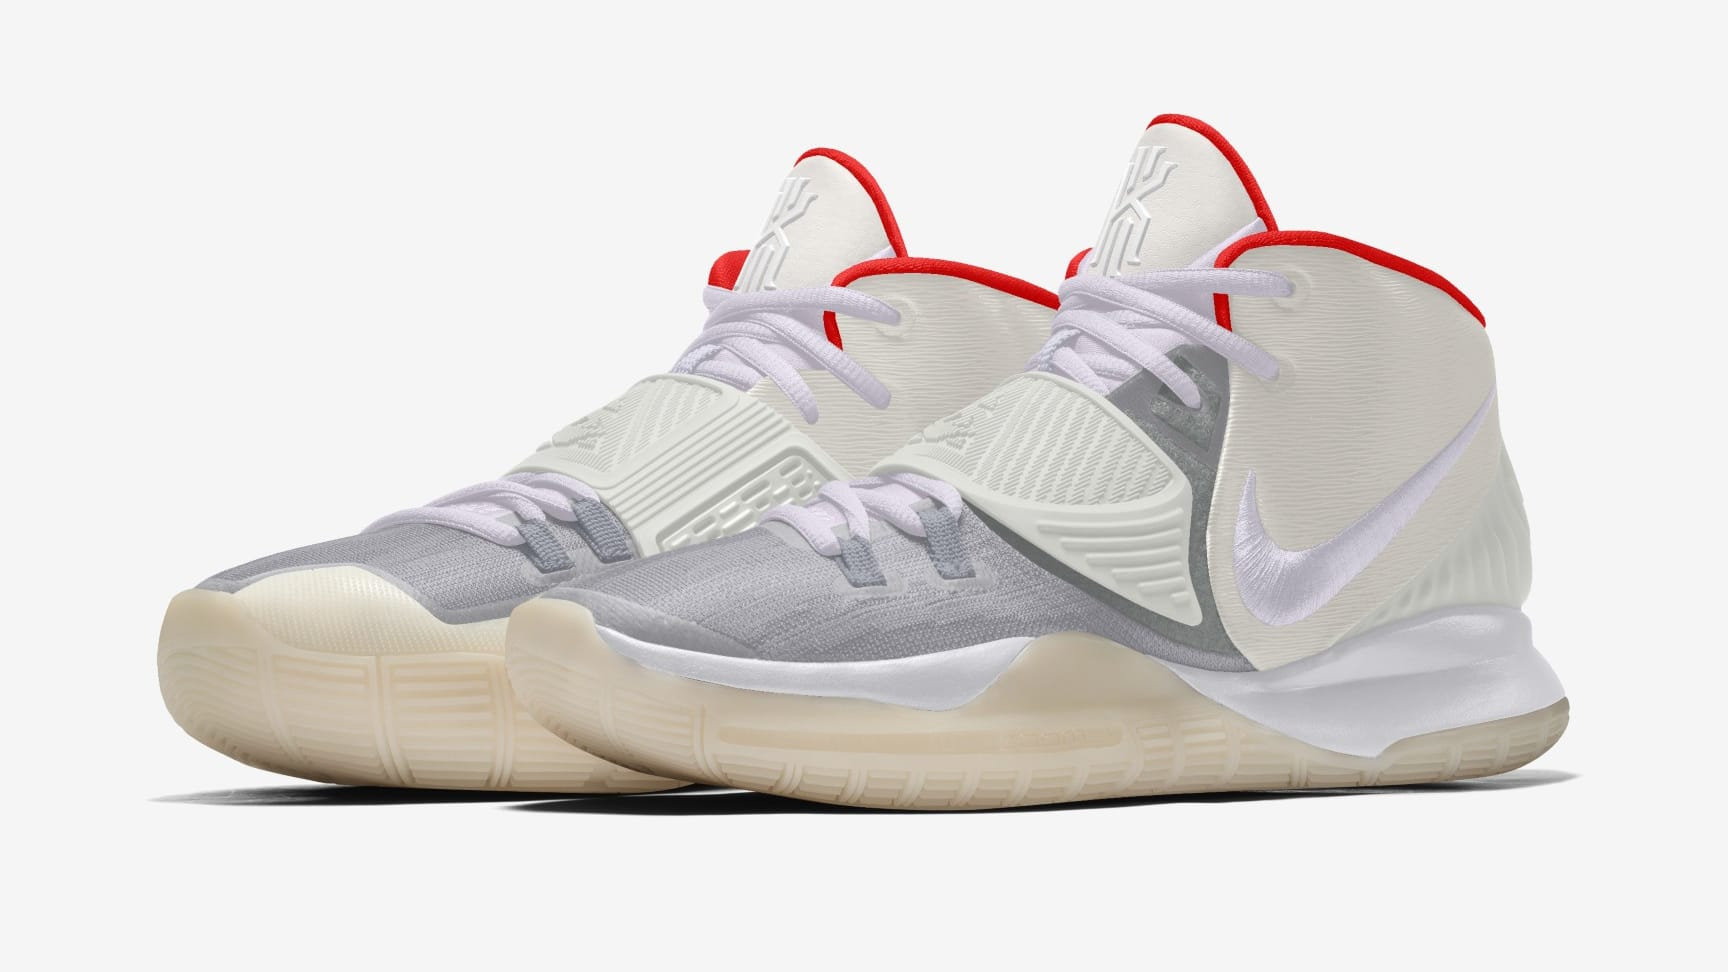 Nike Kyrie 6 Receives Plethora Of Customizable Options: Photos